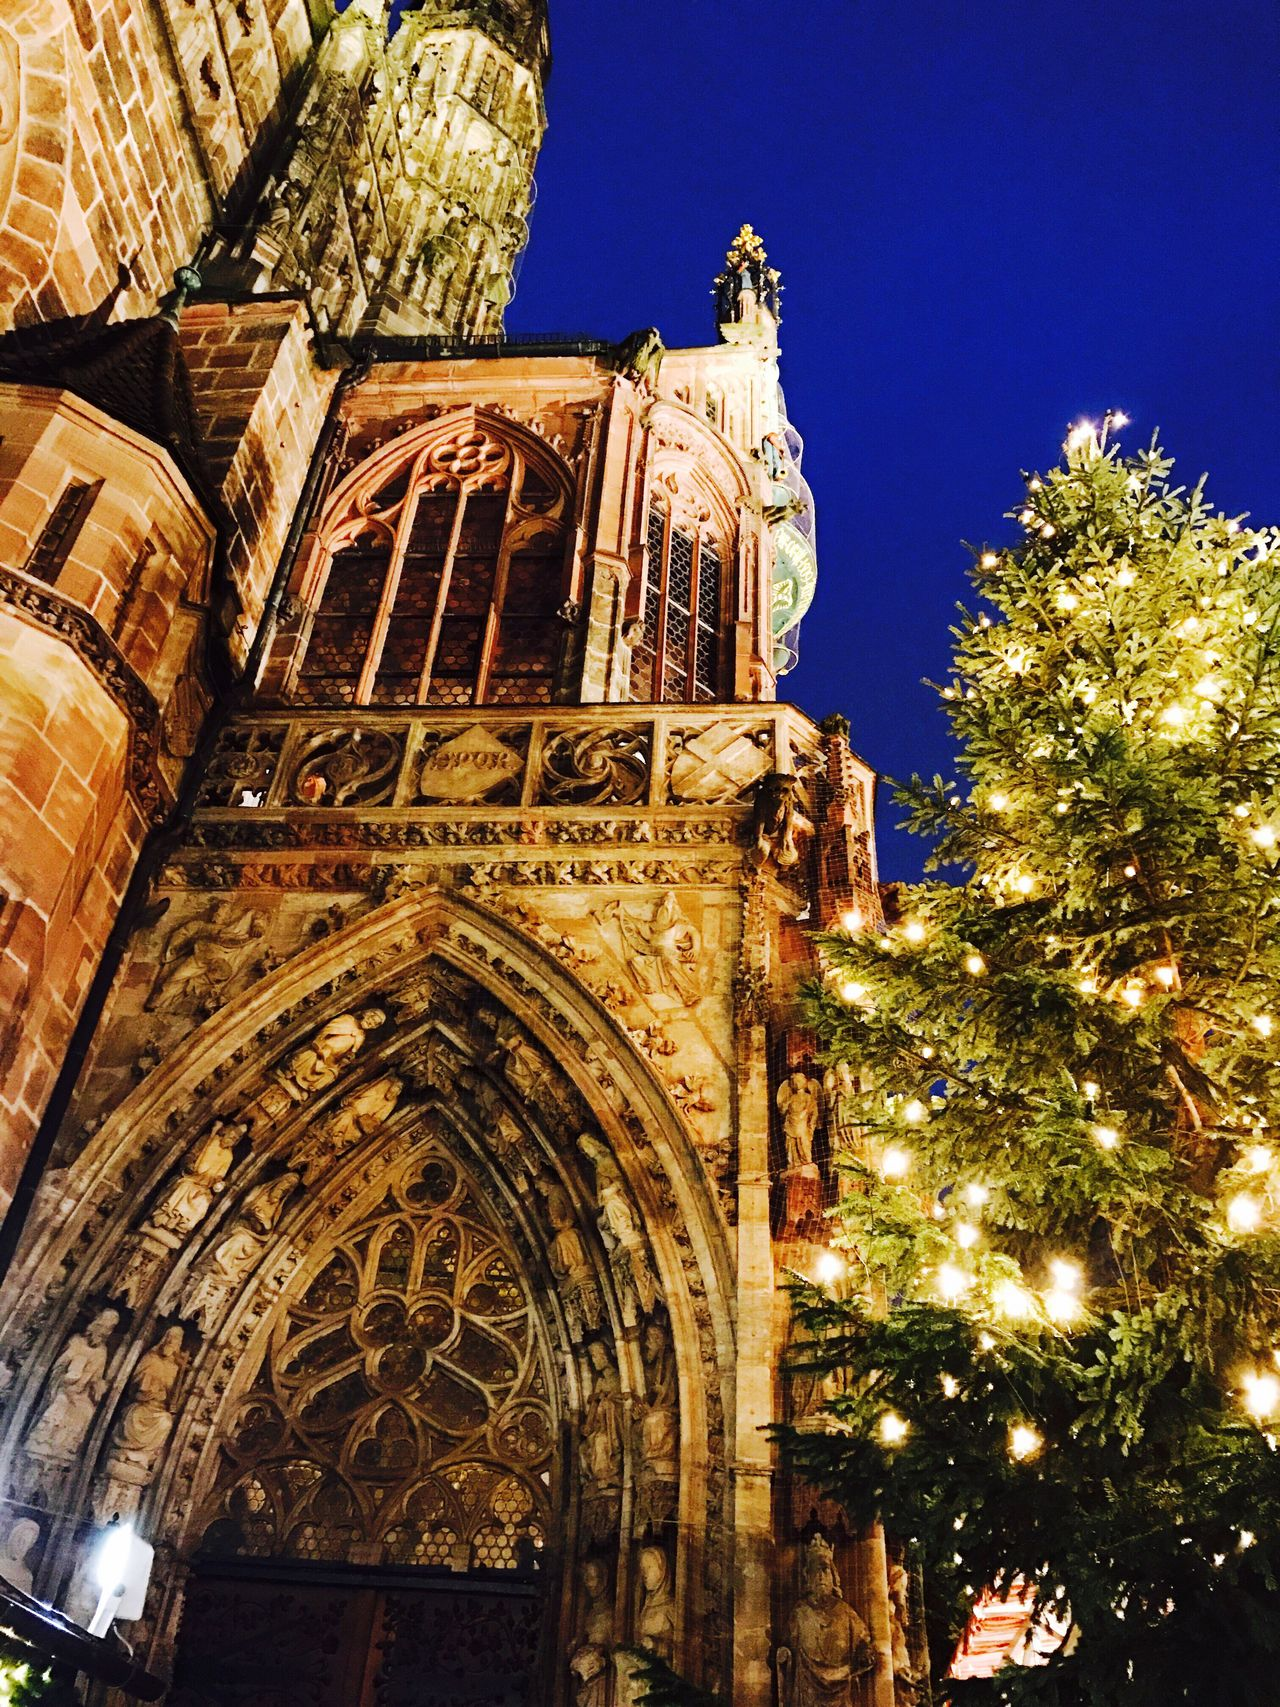 Religion Architecture Built Structure Spirituality Low Angle View Tree Outdoors Sky Building Exterior Mypointofview Mylifethroughmyeyes Christmas Tree Christmas Lights Christmas Around The World Christmas Is Coming Traveling Travel Photography Travellover Passionforphotography Pictureoftheday EyeEm Gallery EyeEm Best Shots - Architecture Tagsforlikes Christmas Market in Nürnberg Germany